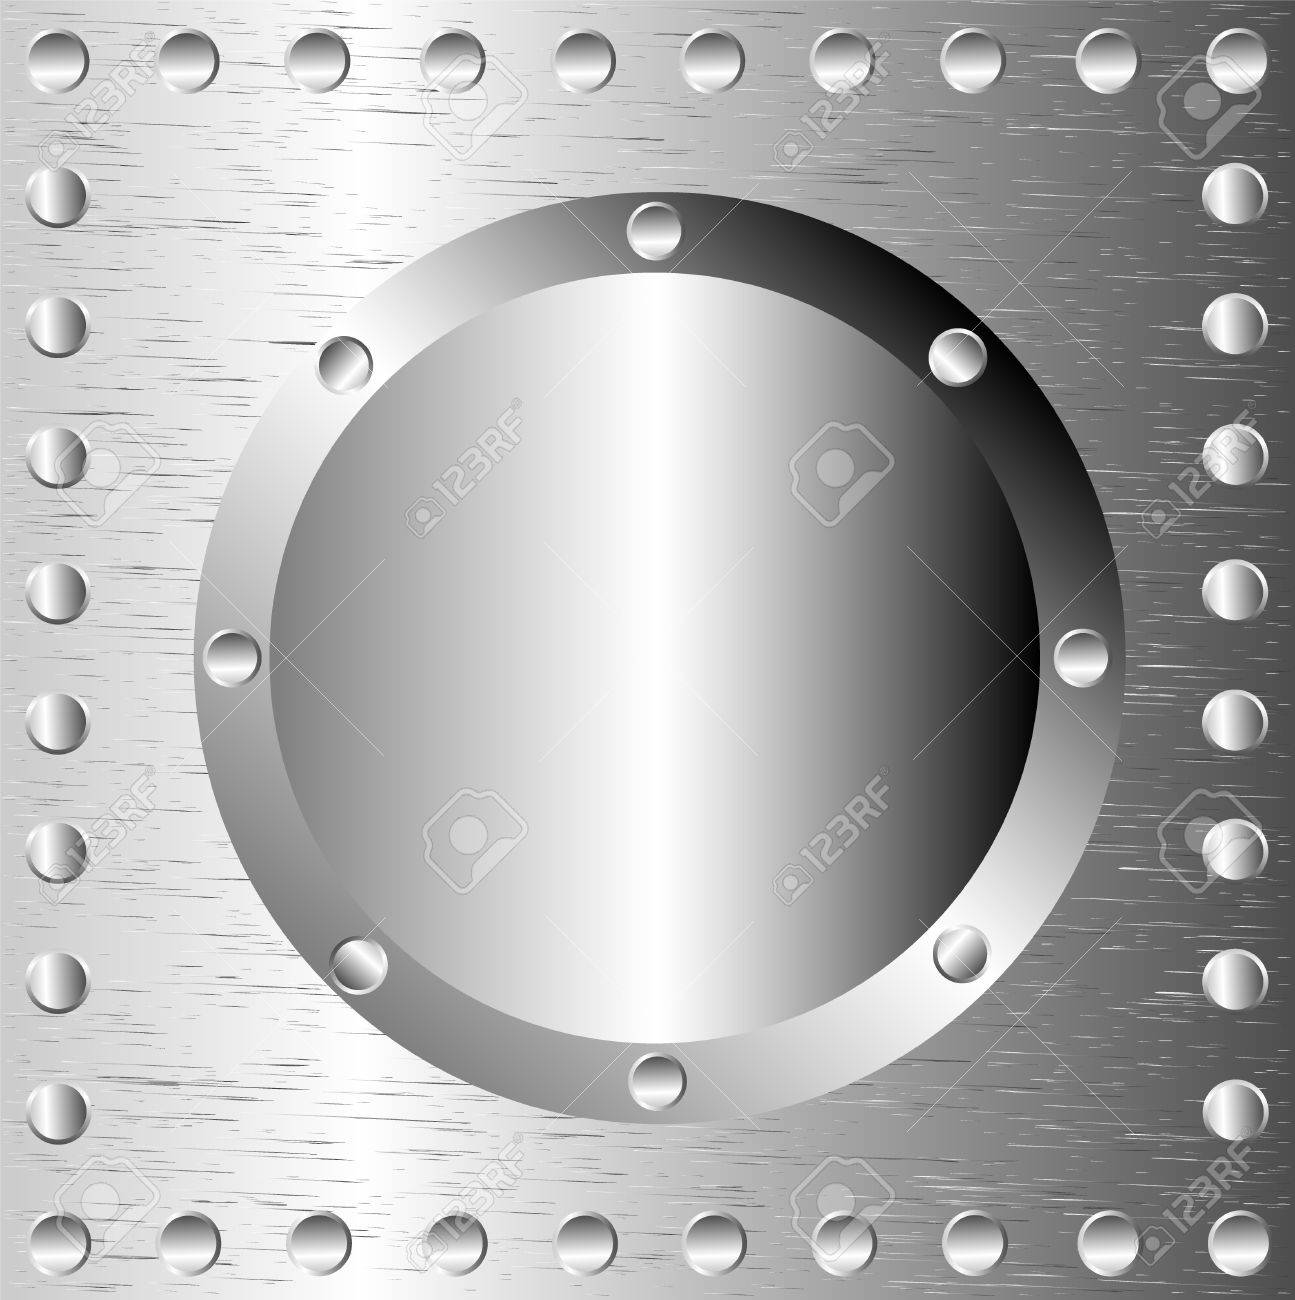 A metal background with rivets Stock Vector - 9935536